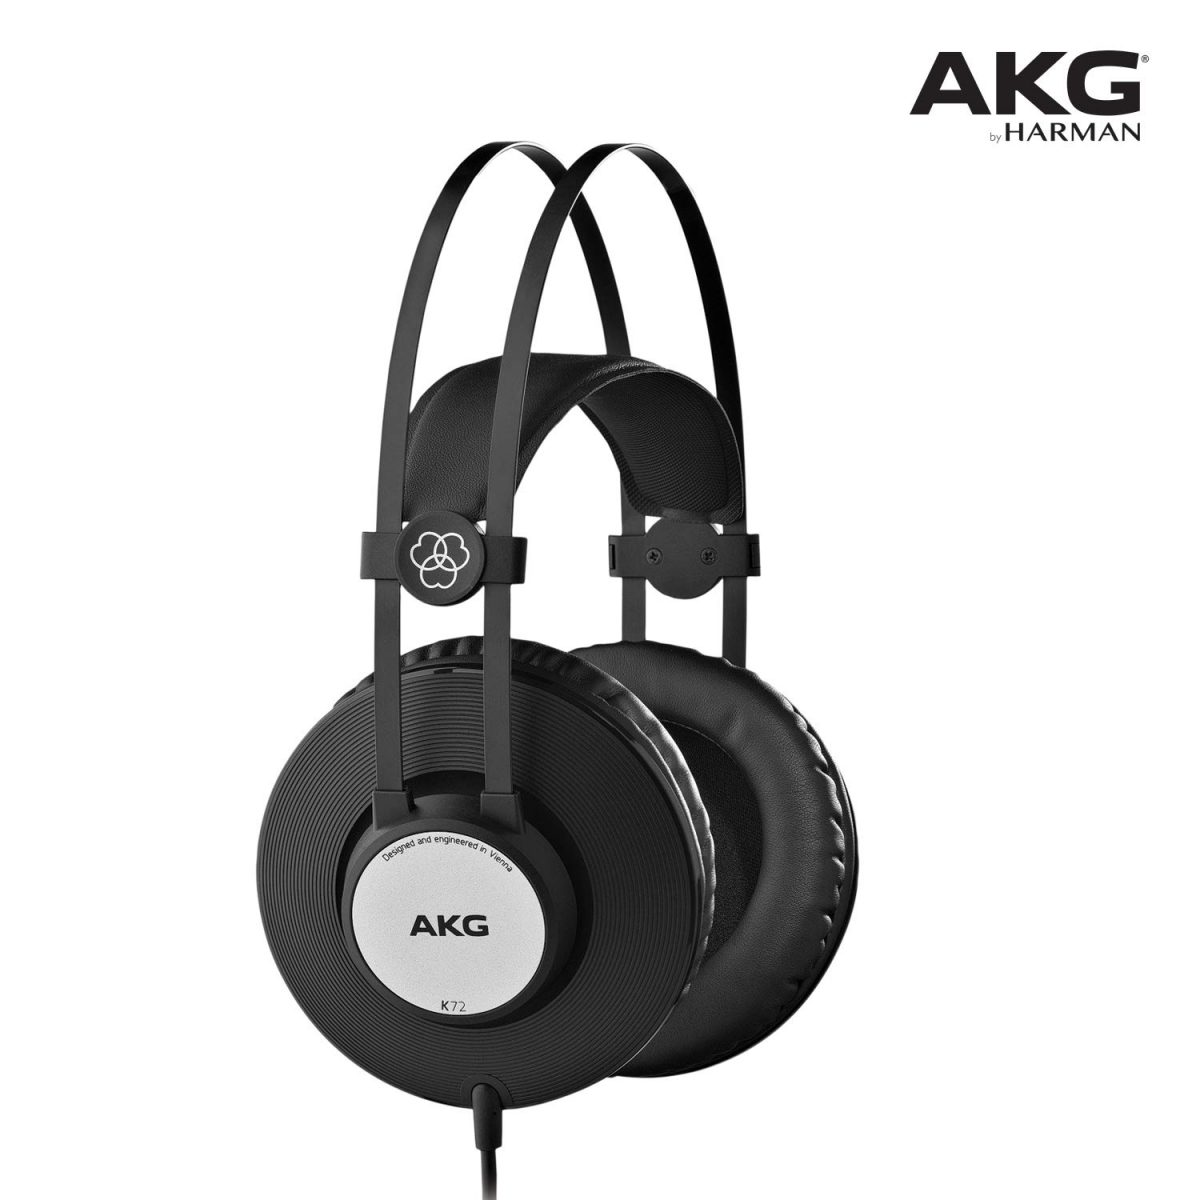 http://The%20AKG%20K72%20studio%20headphone%20in%20black%20colour%20with%20wires%20connectivity.